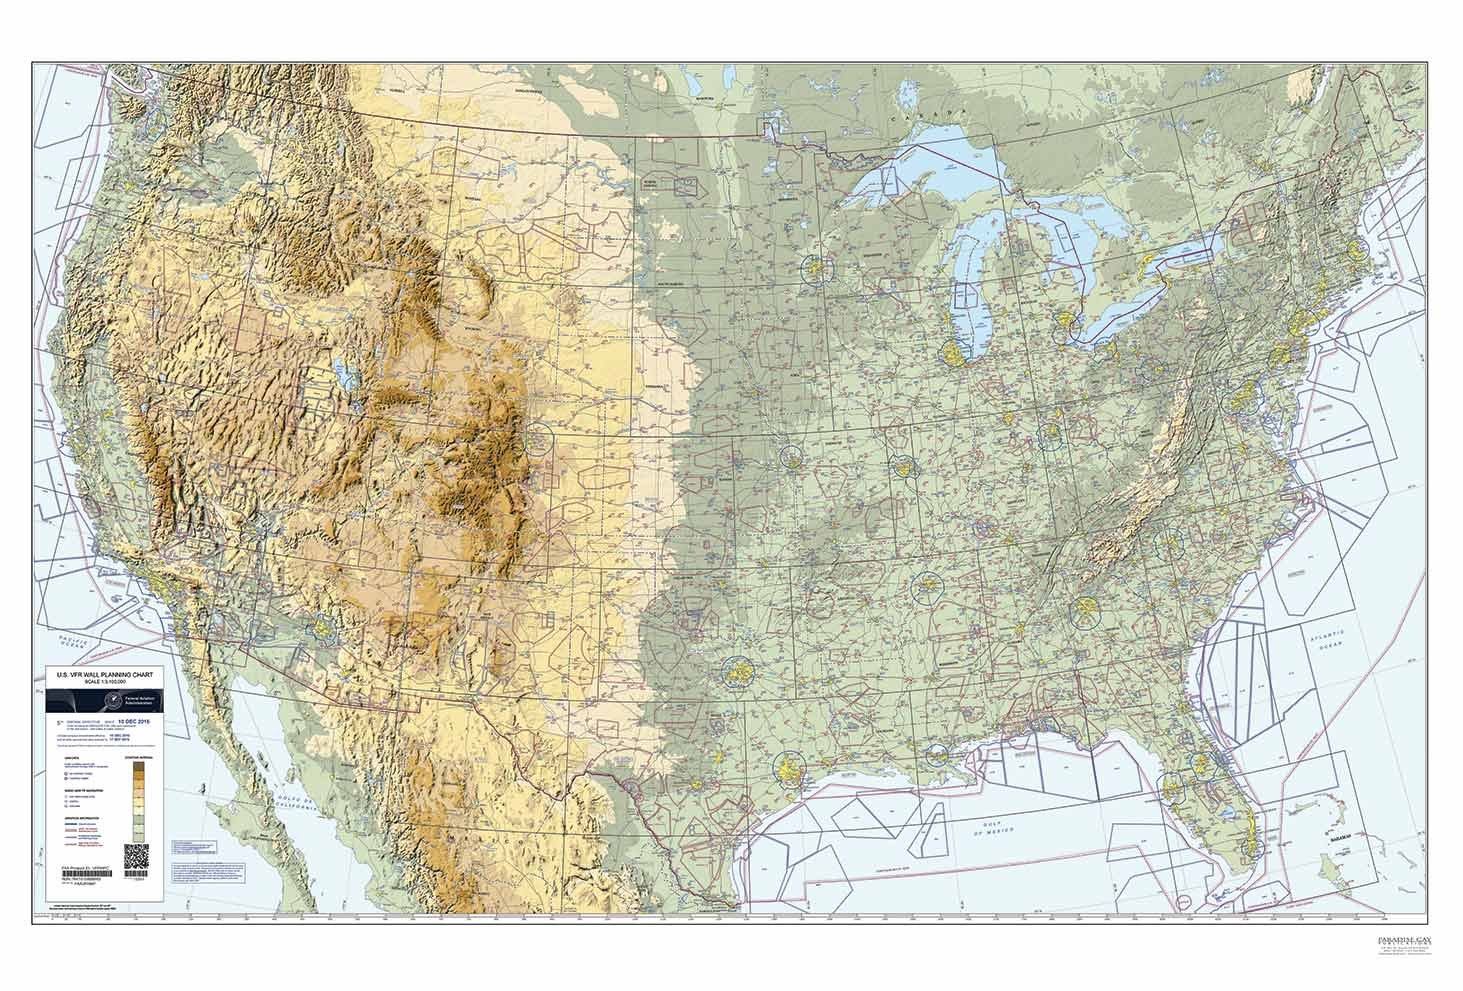 Amazoncom FAA Chart US VFR Wall Planning Chart Flat VFRWPC - Faa map of us after 9 11